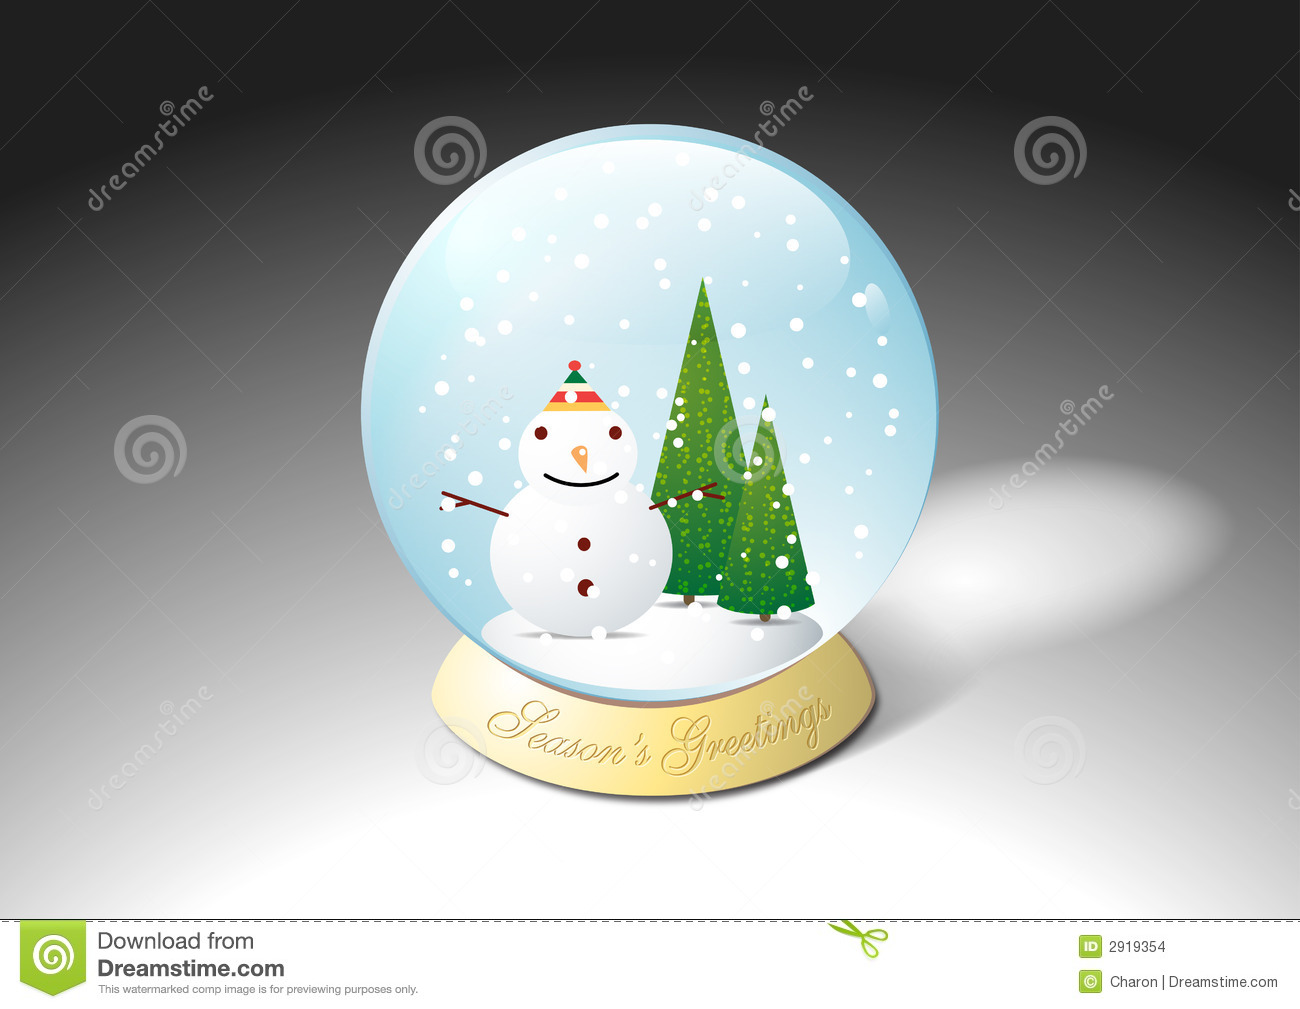 Illustration Decoration Christmas Crystal Water Snowball Stock Images - Image: 2919354